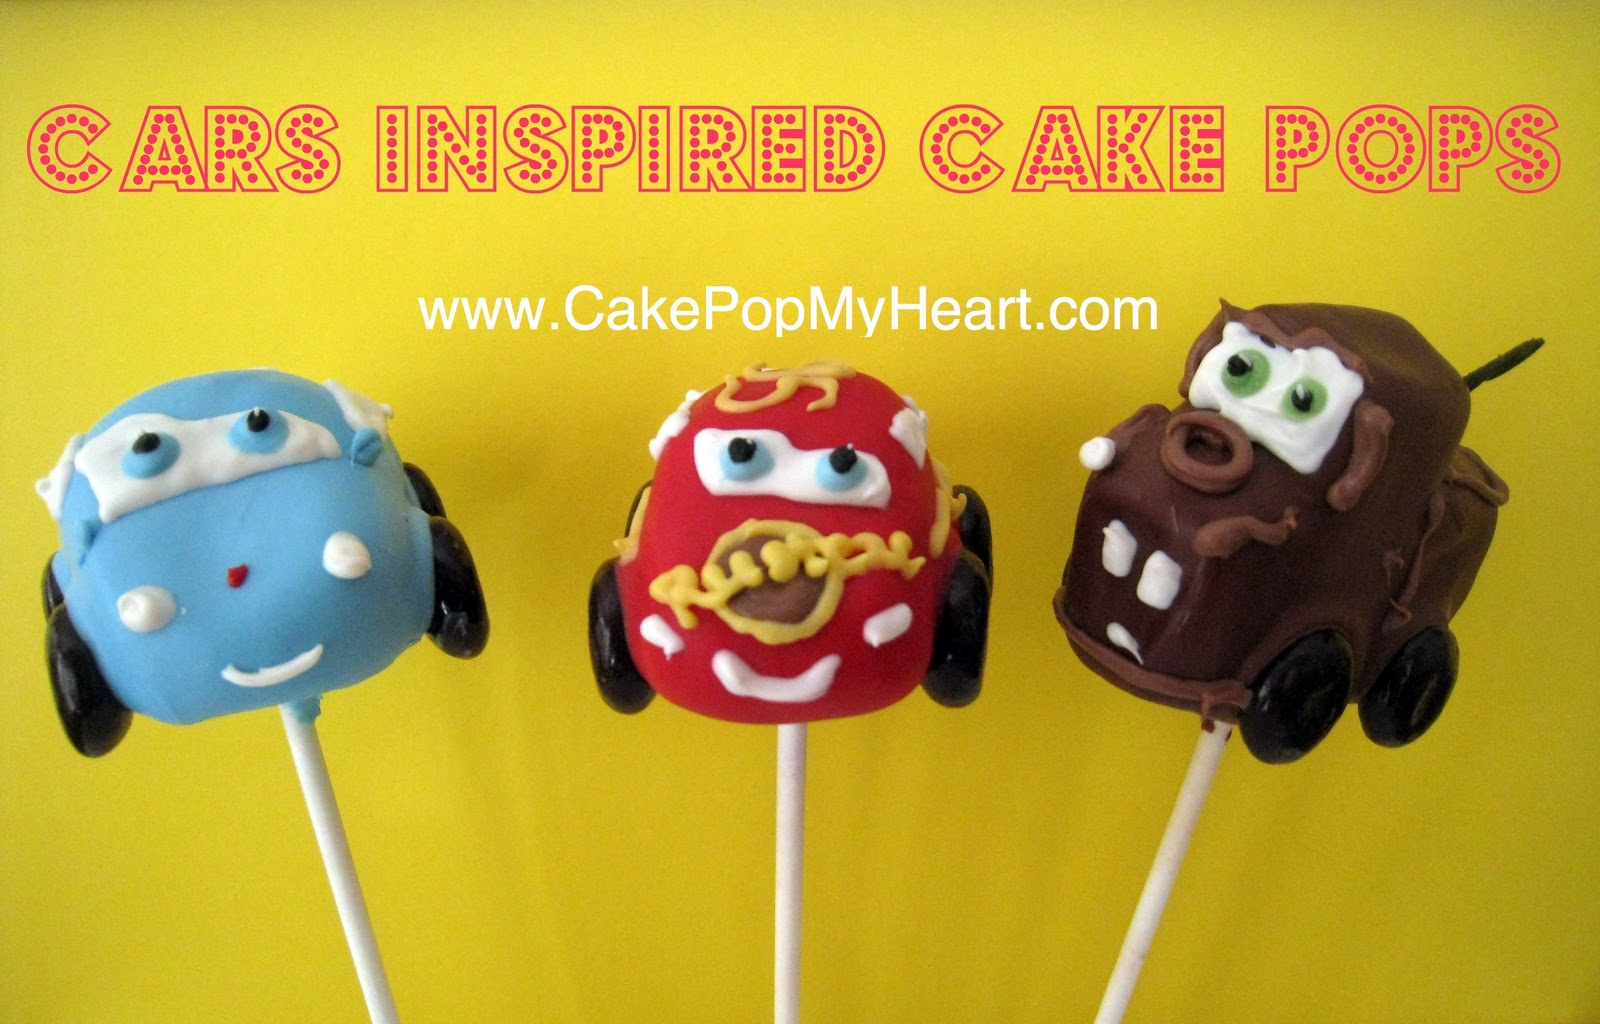 Cake Pop My Heart Cars Inspired Cake Pops